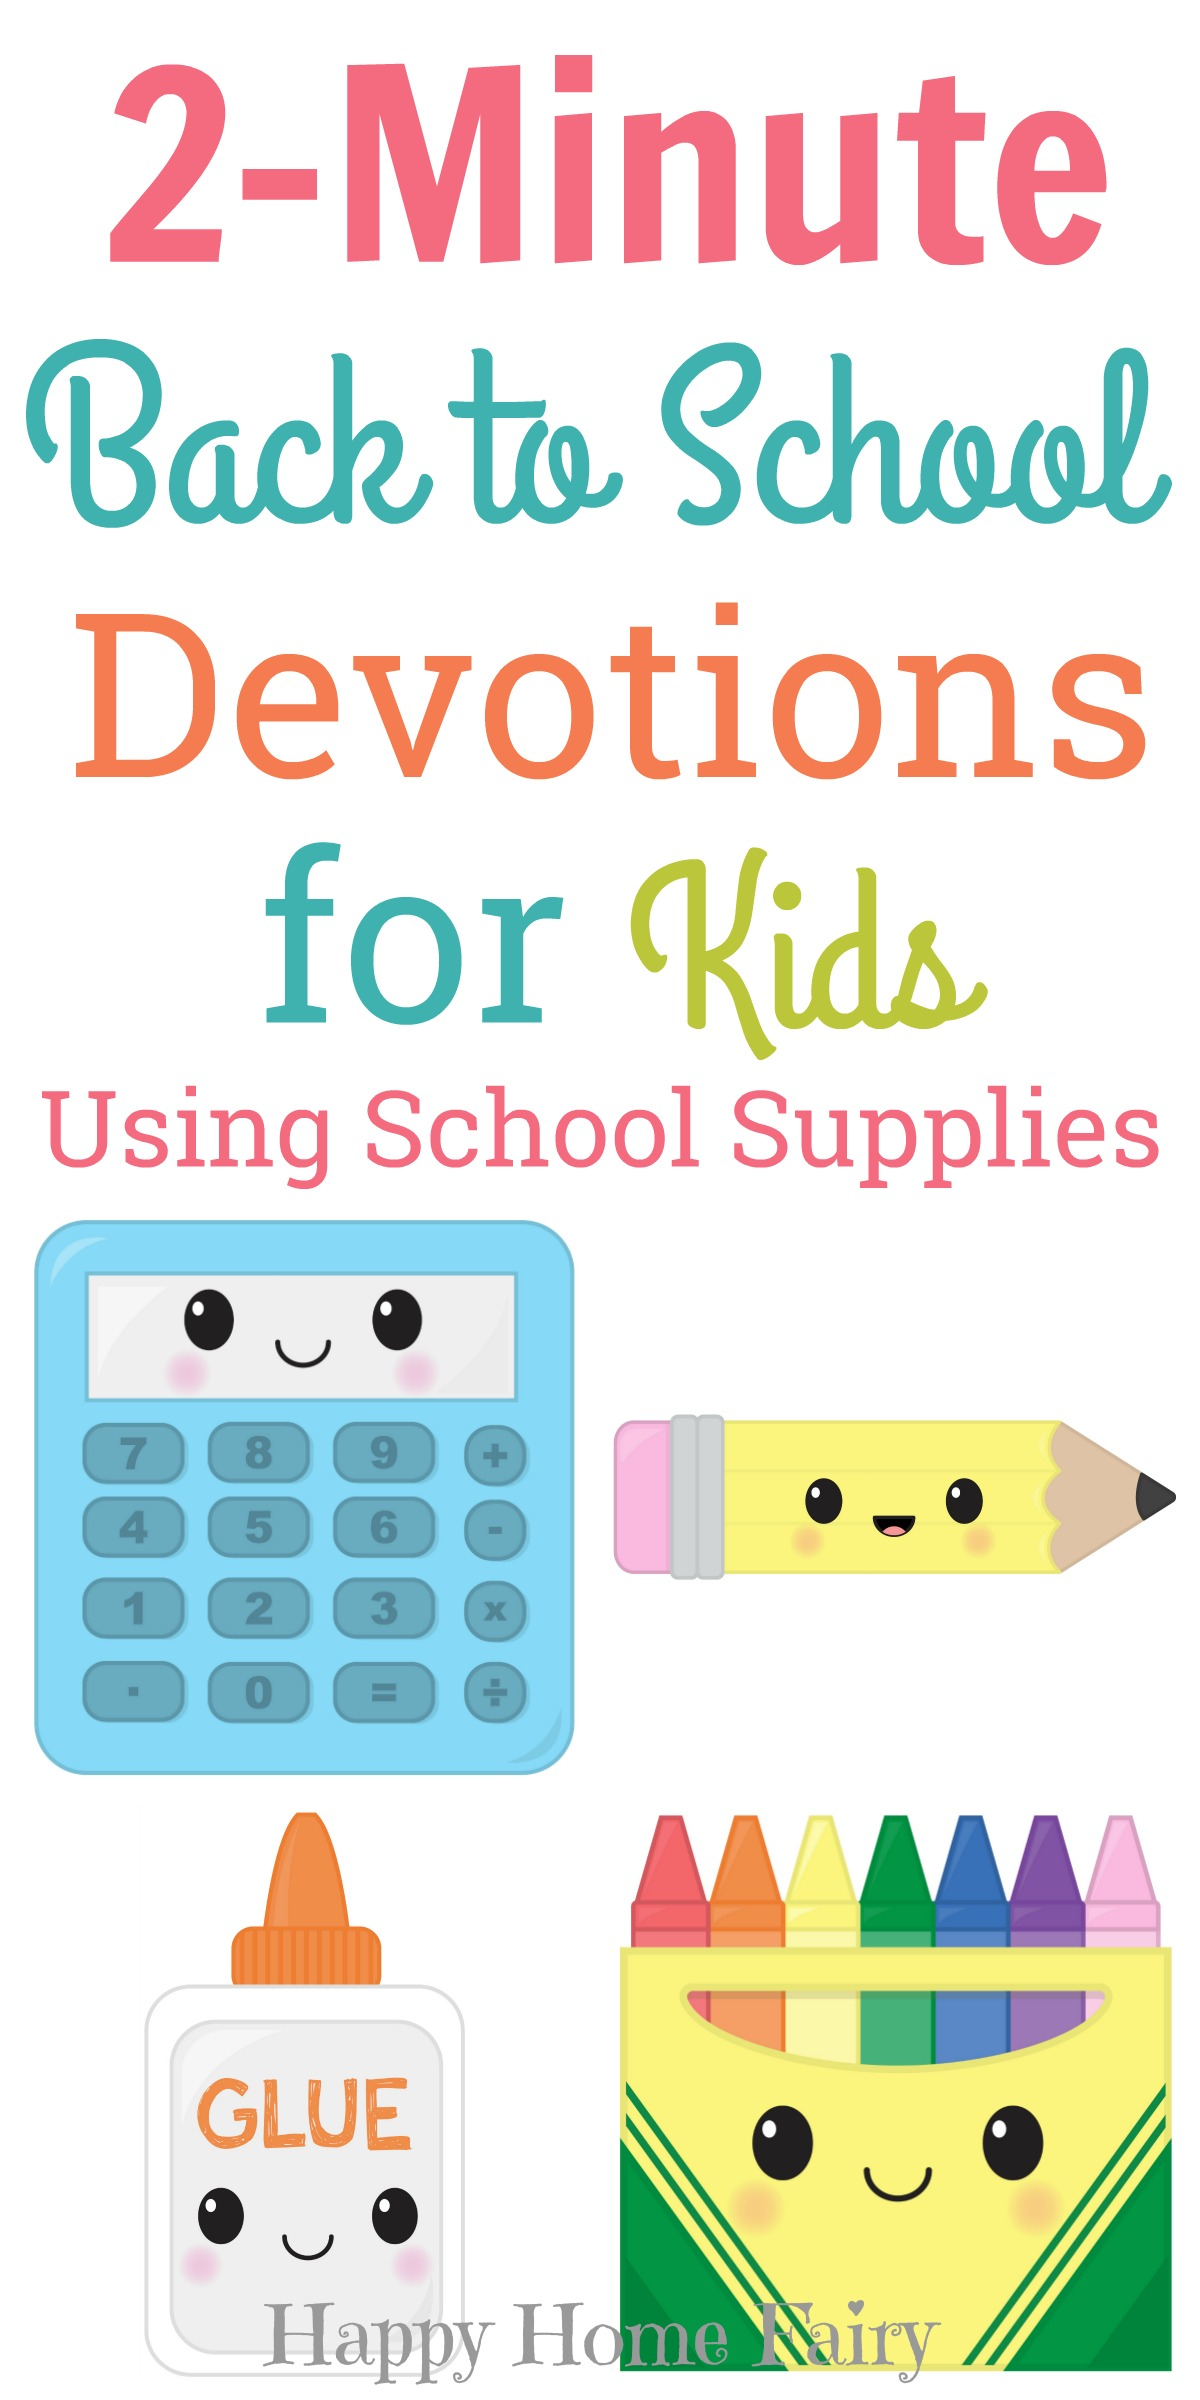 picture relating to Printable Bible Devotions for Kids called 2-Moment Back again toward College or university Devotions for Small children - Content Household Fairy